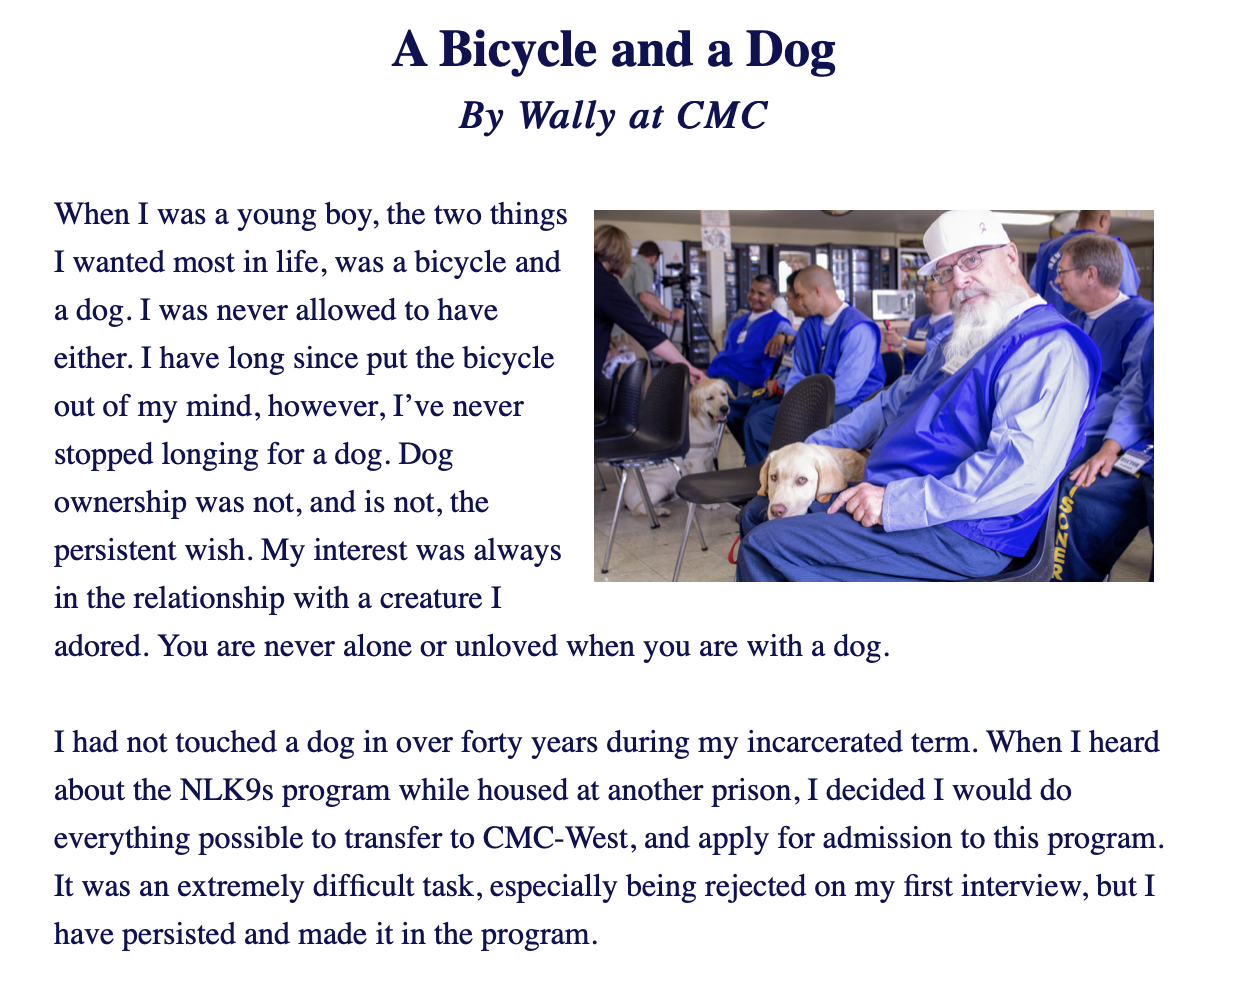 A Bicycle and a Dog